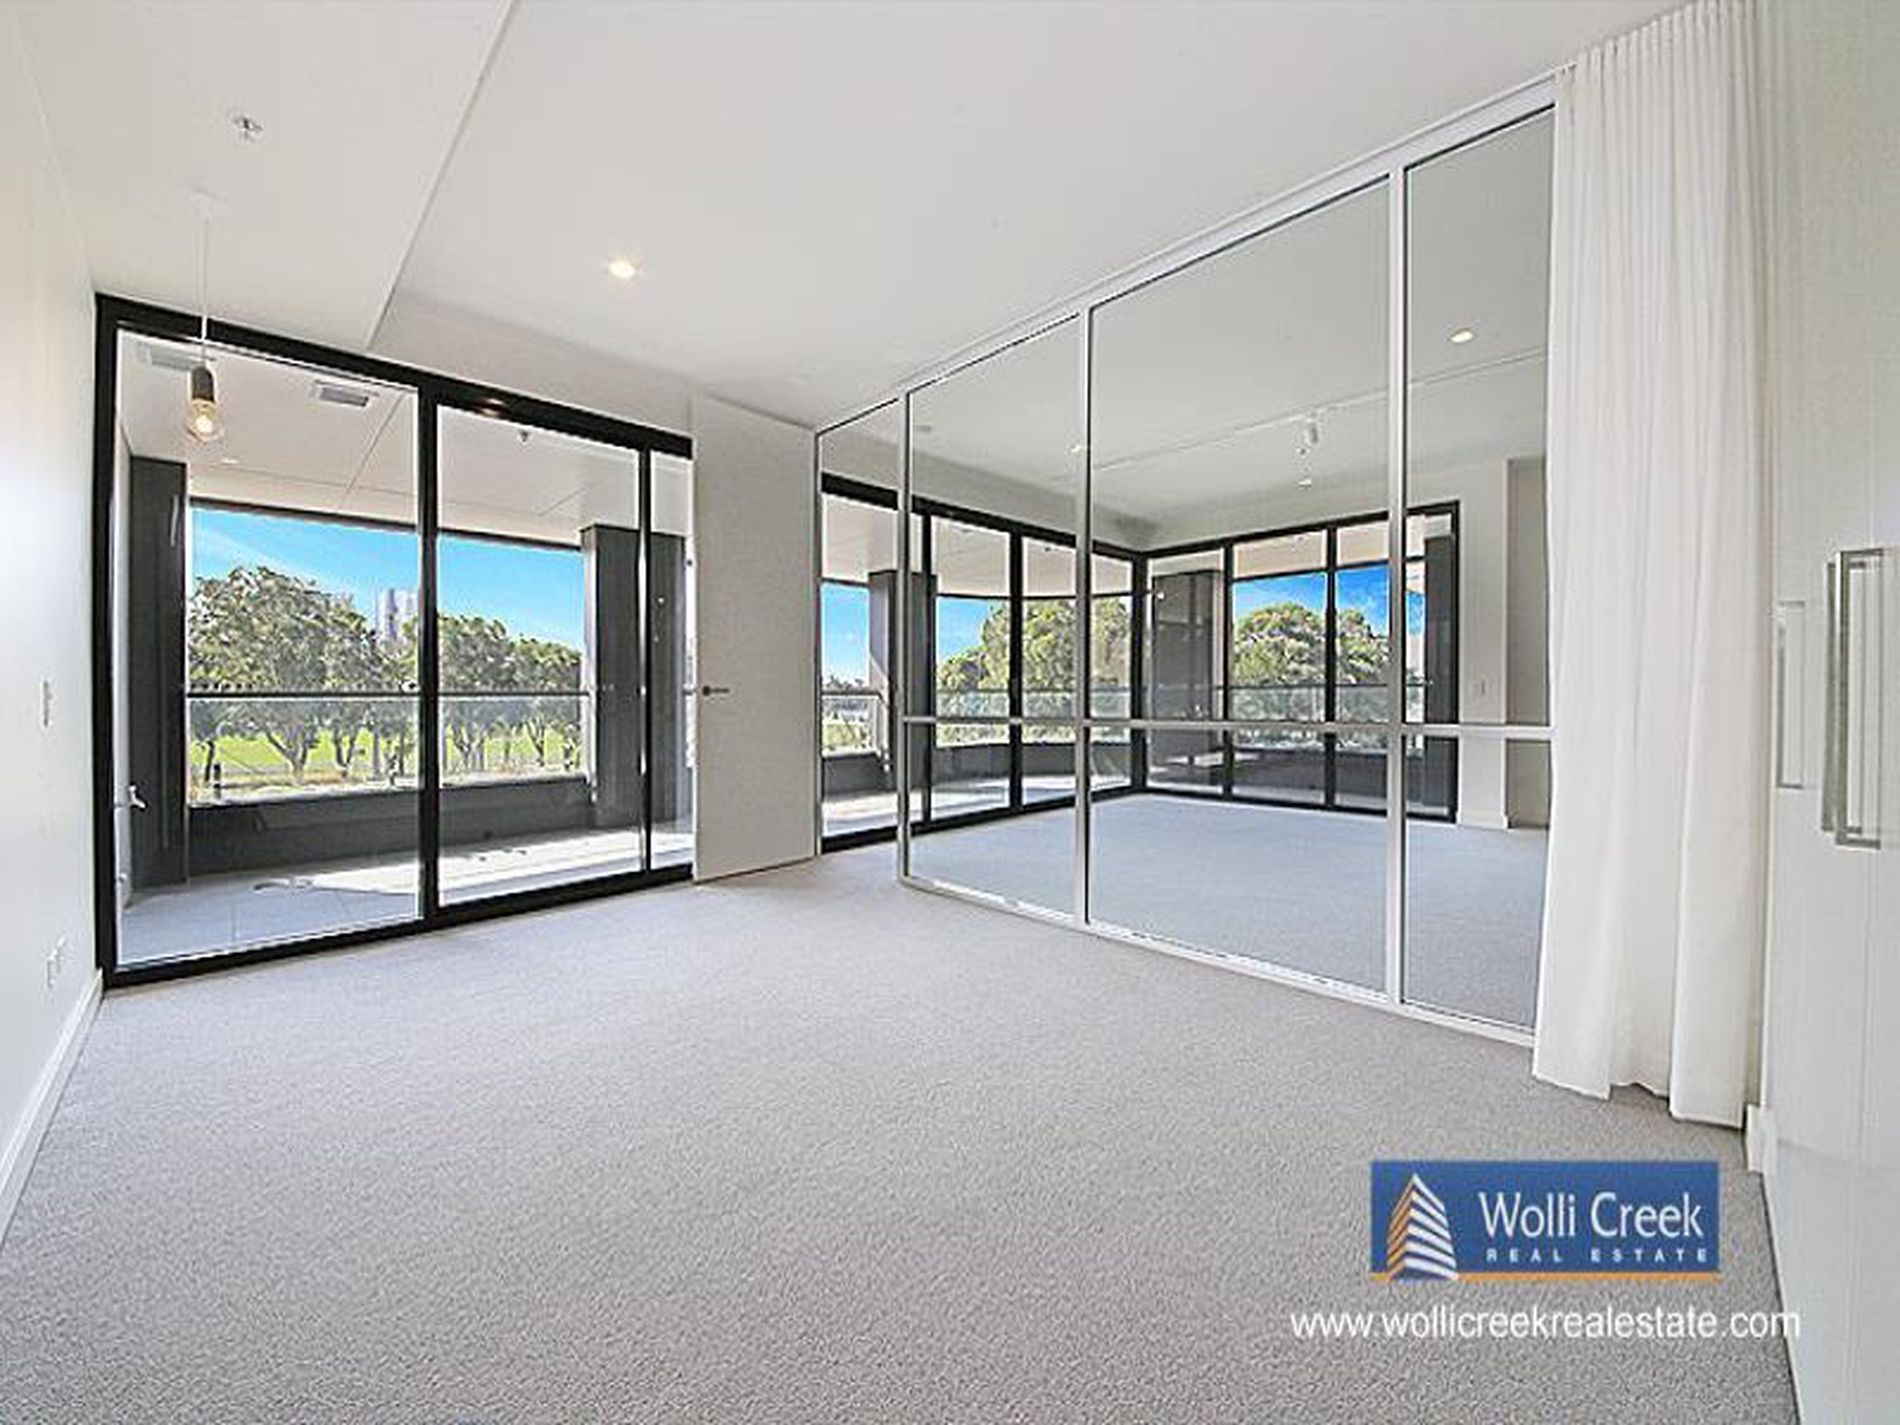 20 Levey Street, Wolli Creek